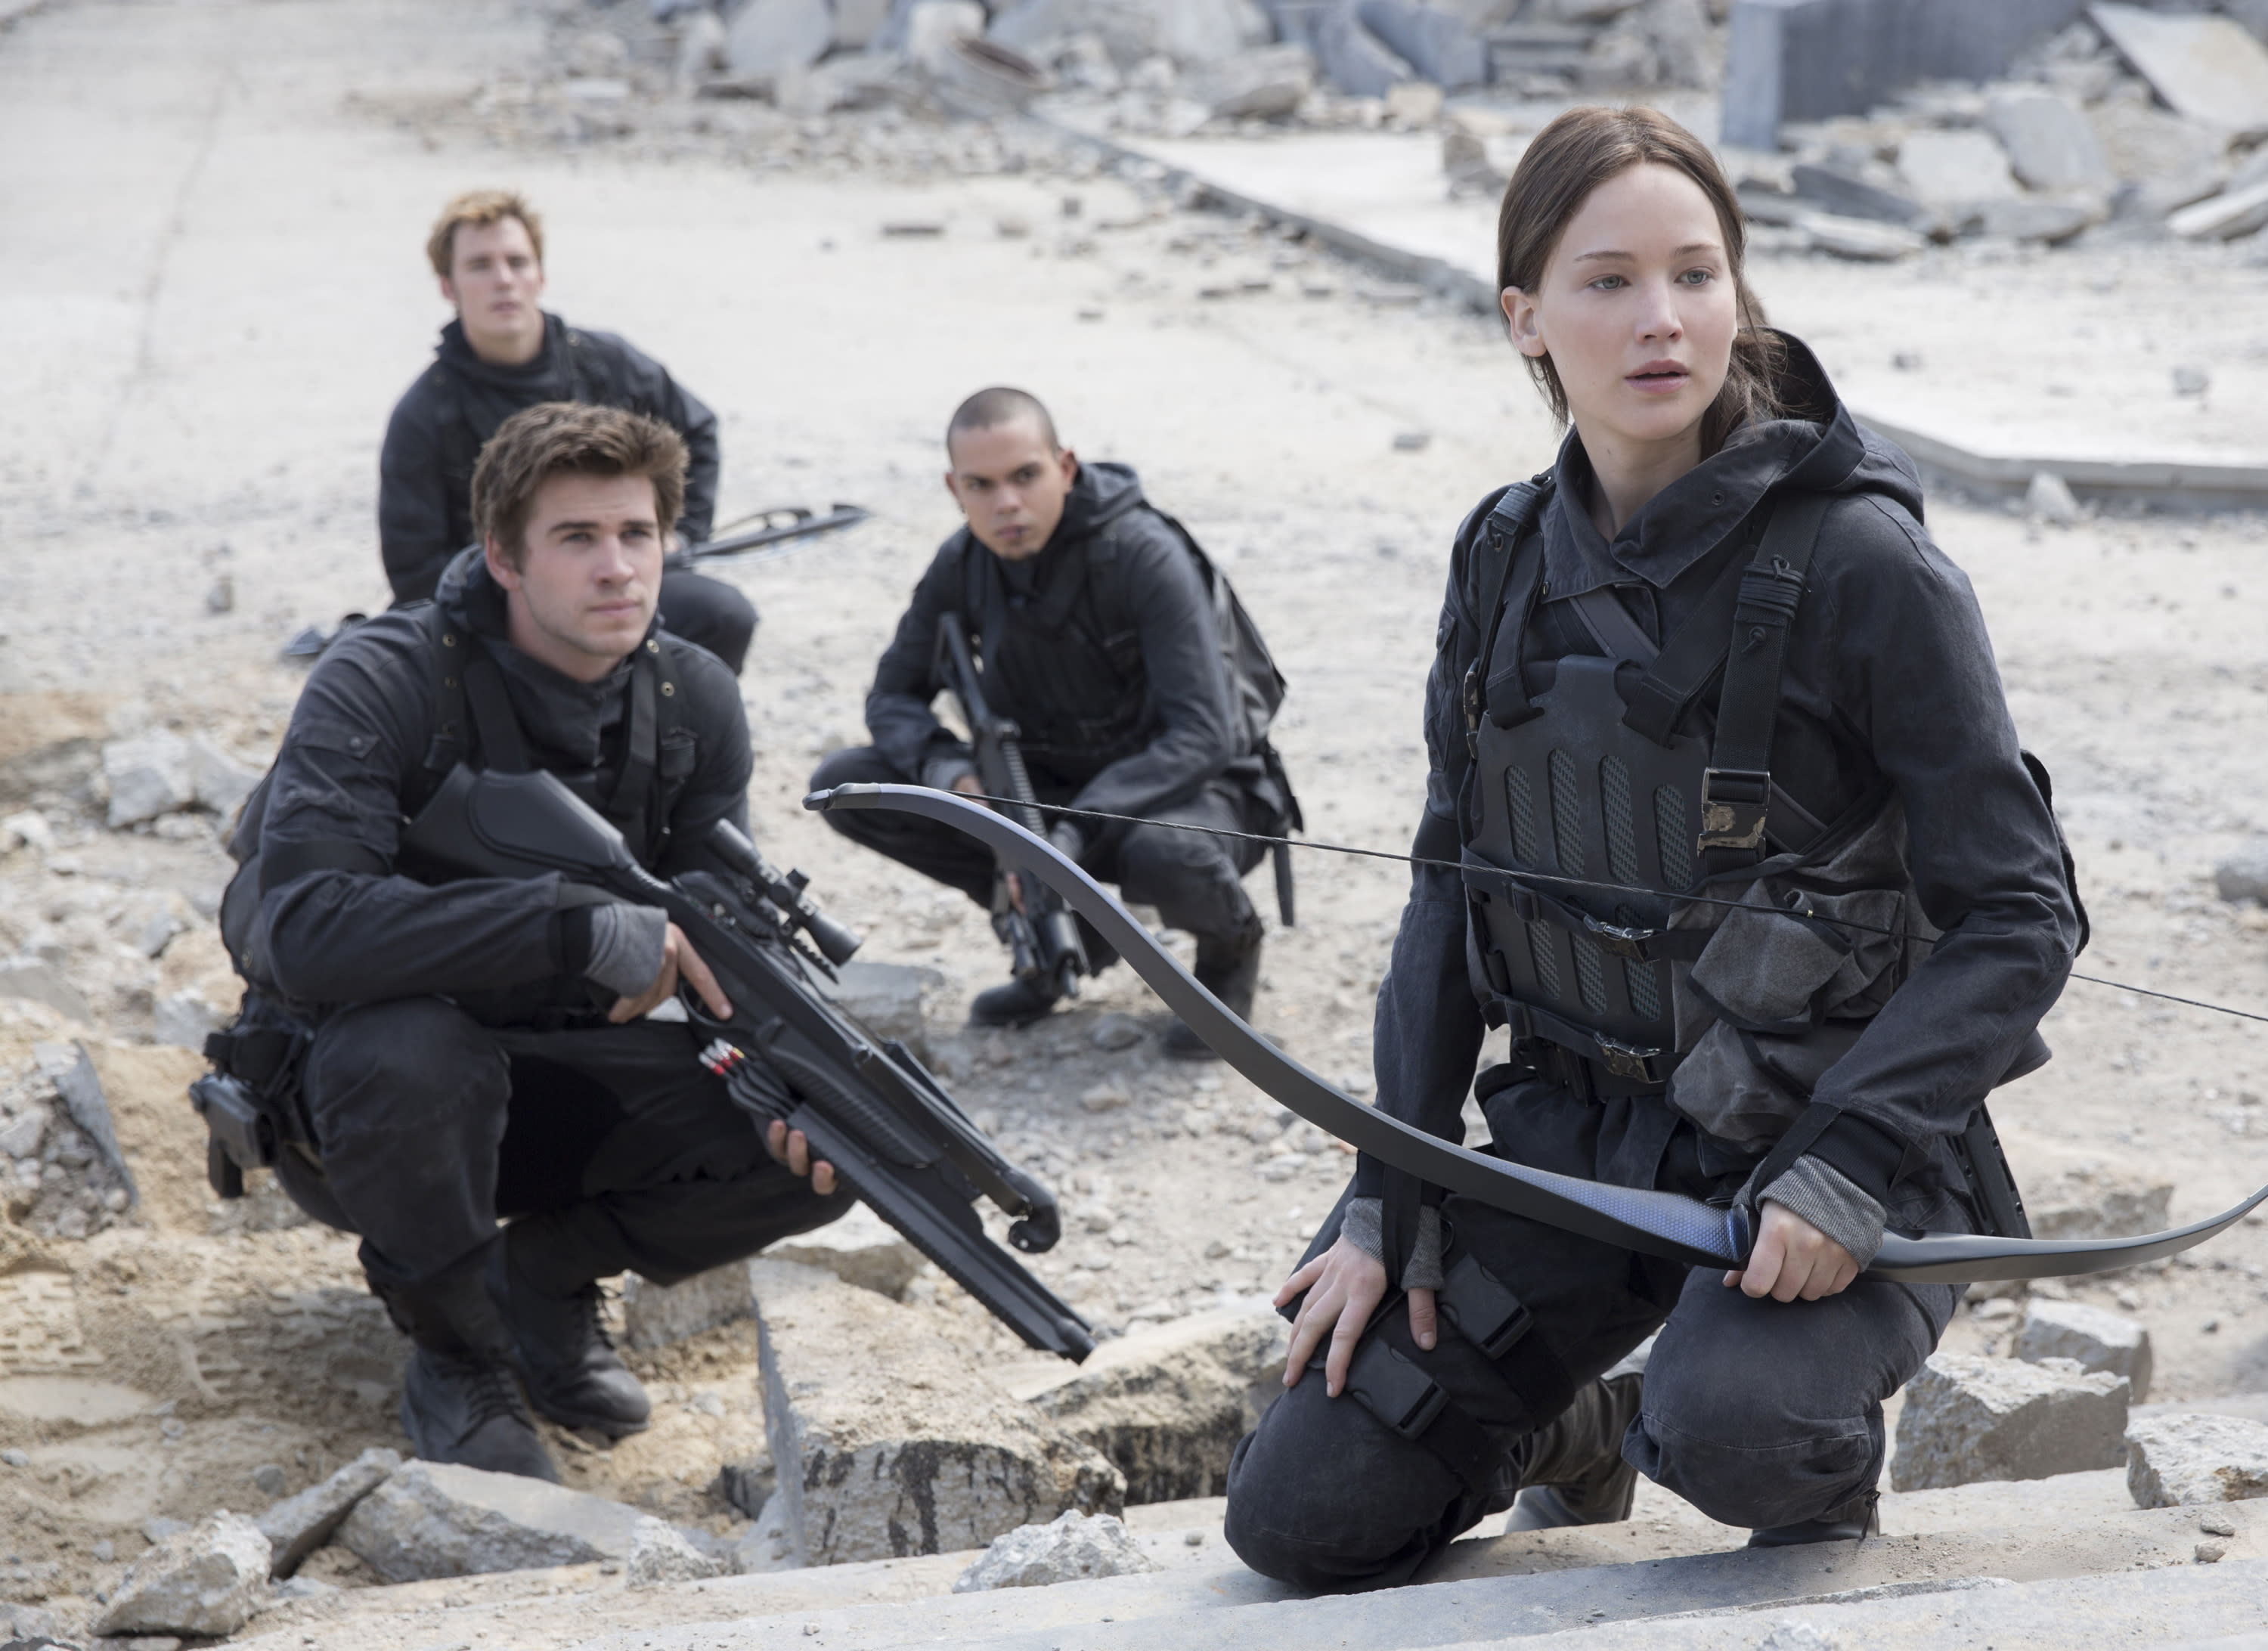 'Hunger Games' beats 'Good Dinosaur,' 'Creed' at box office